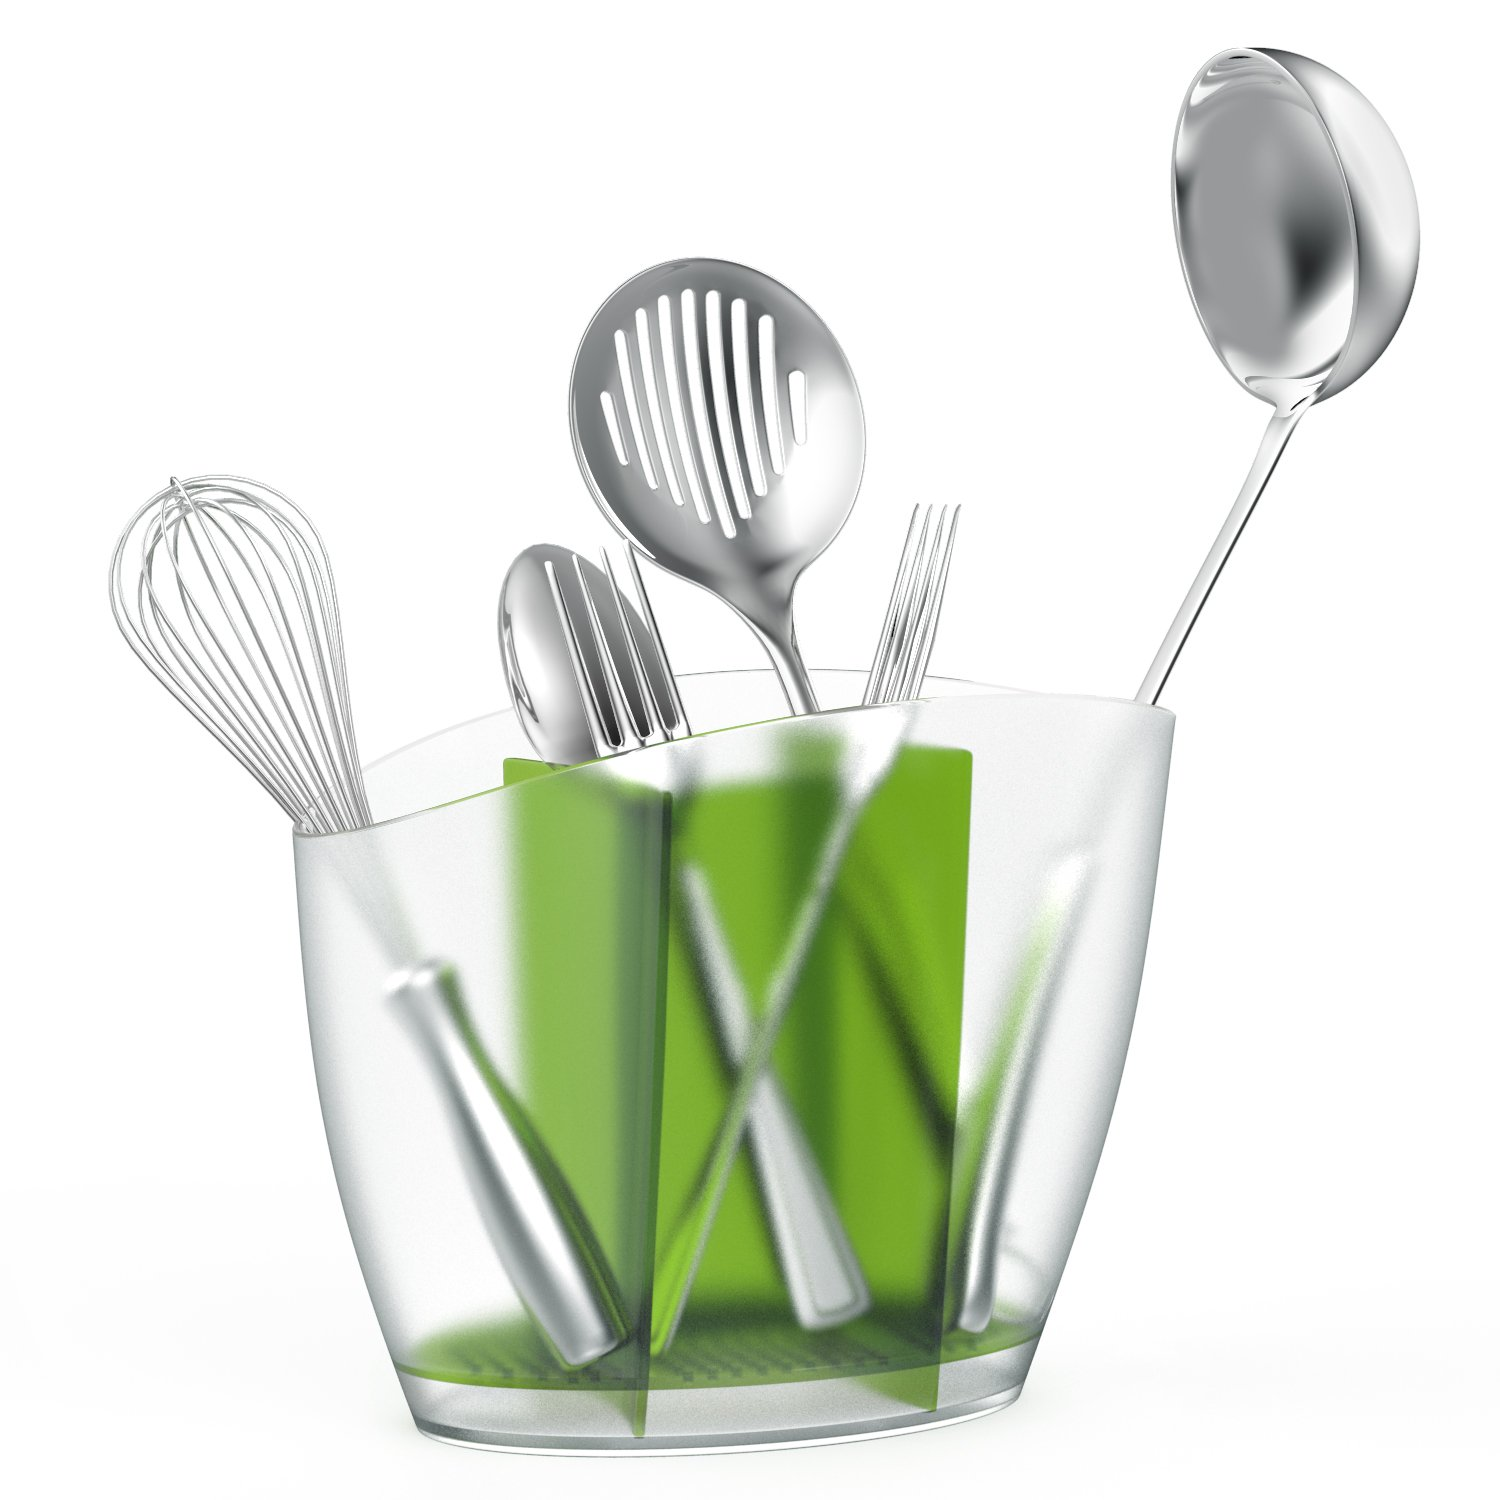 Details about Nuovoware Kitchen Utensil Holder Flatware Caddy Container  Cutlery Organizer New